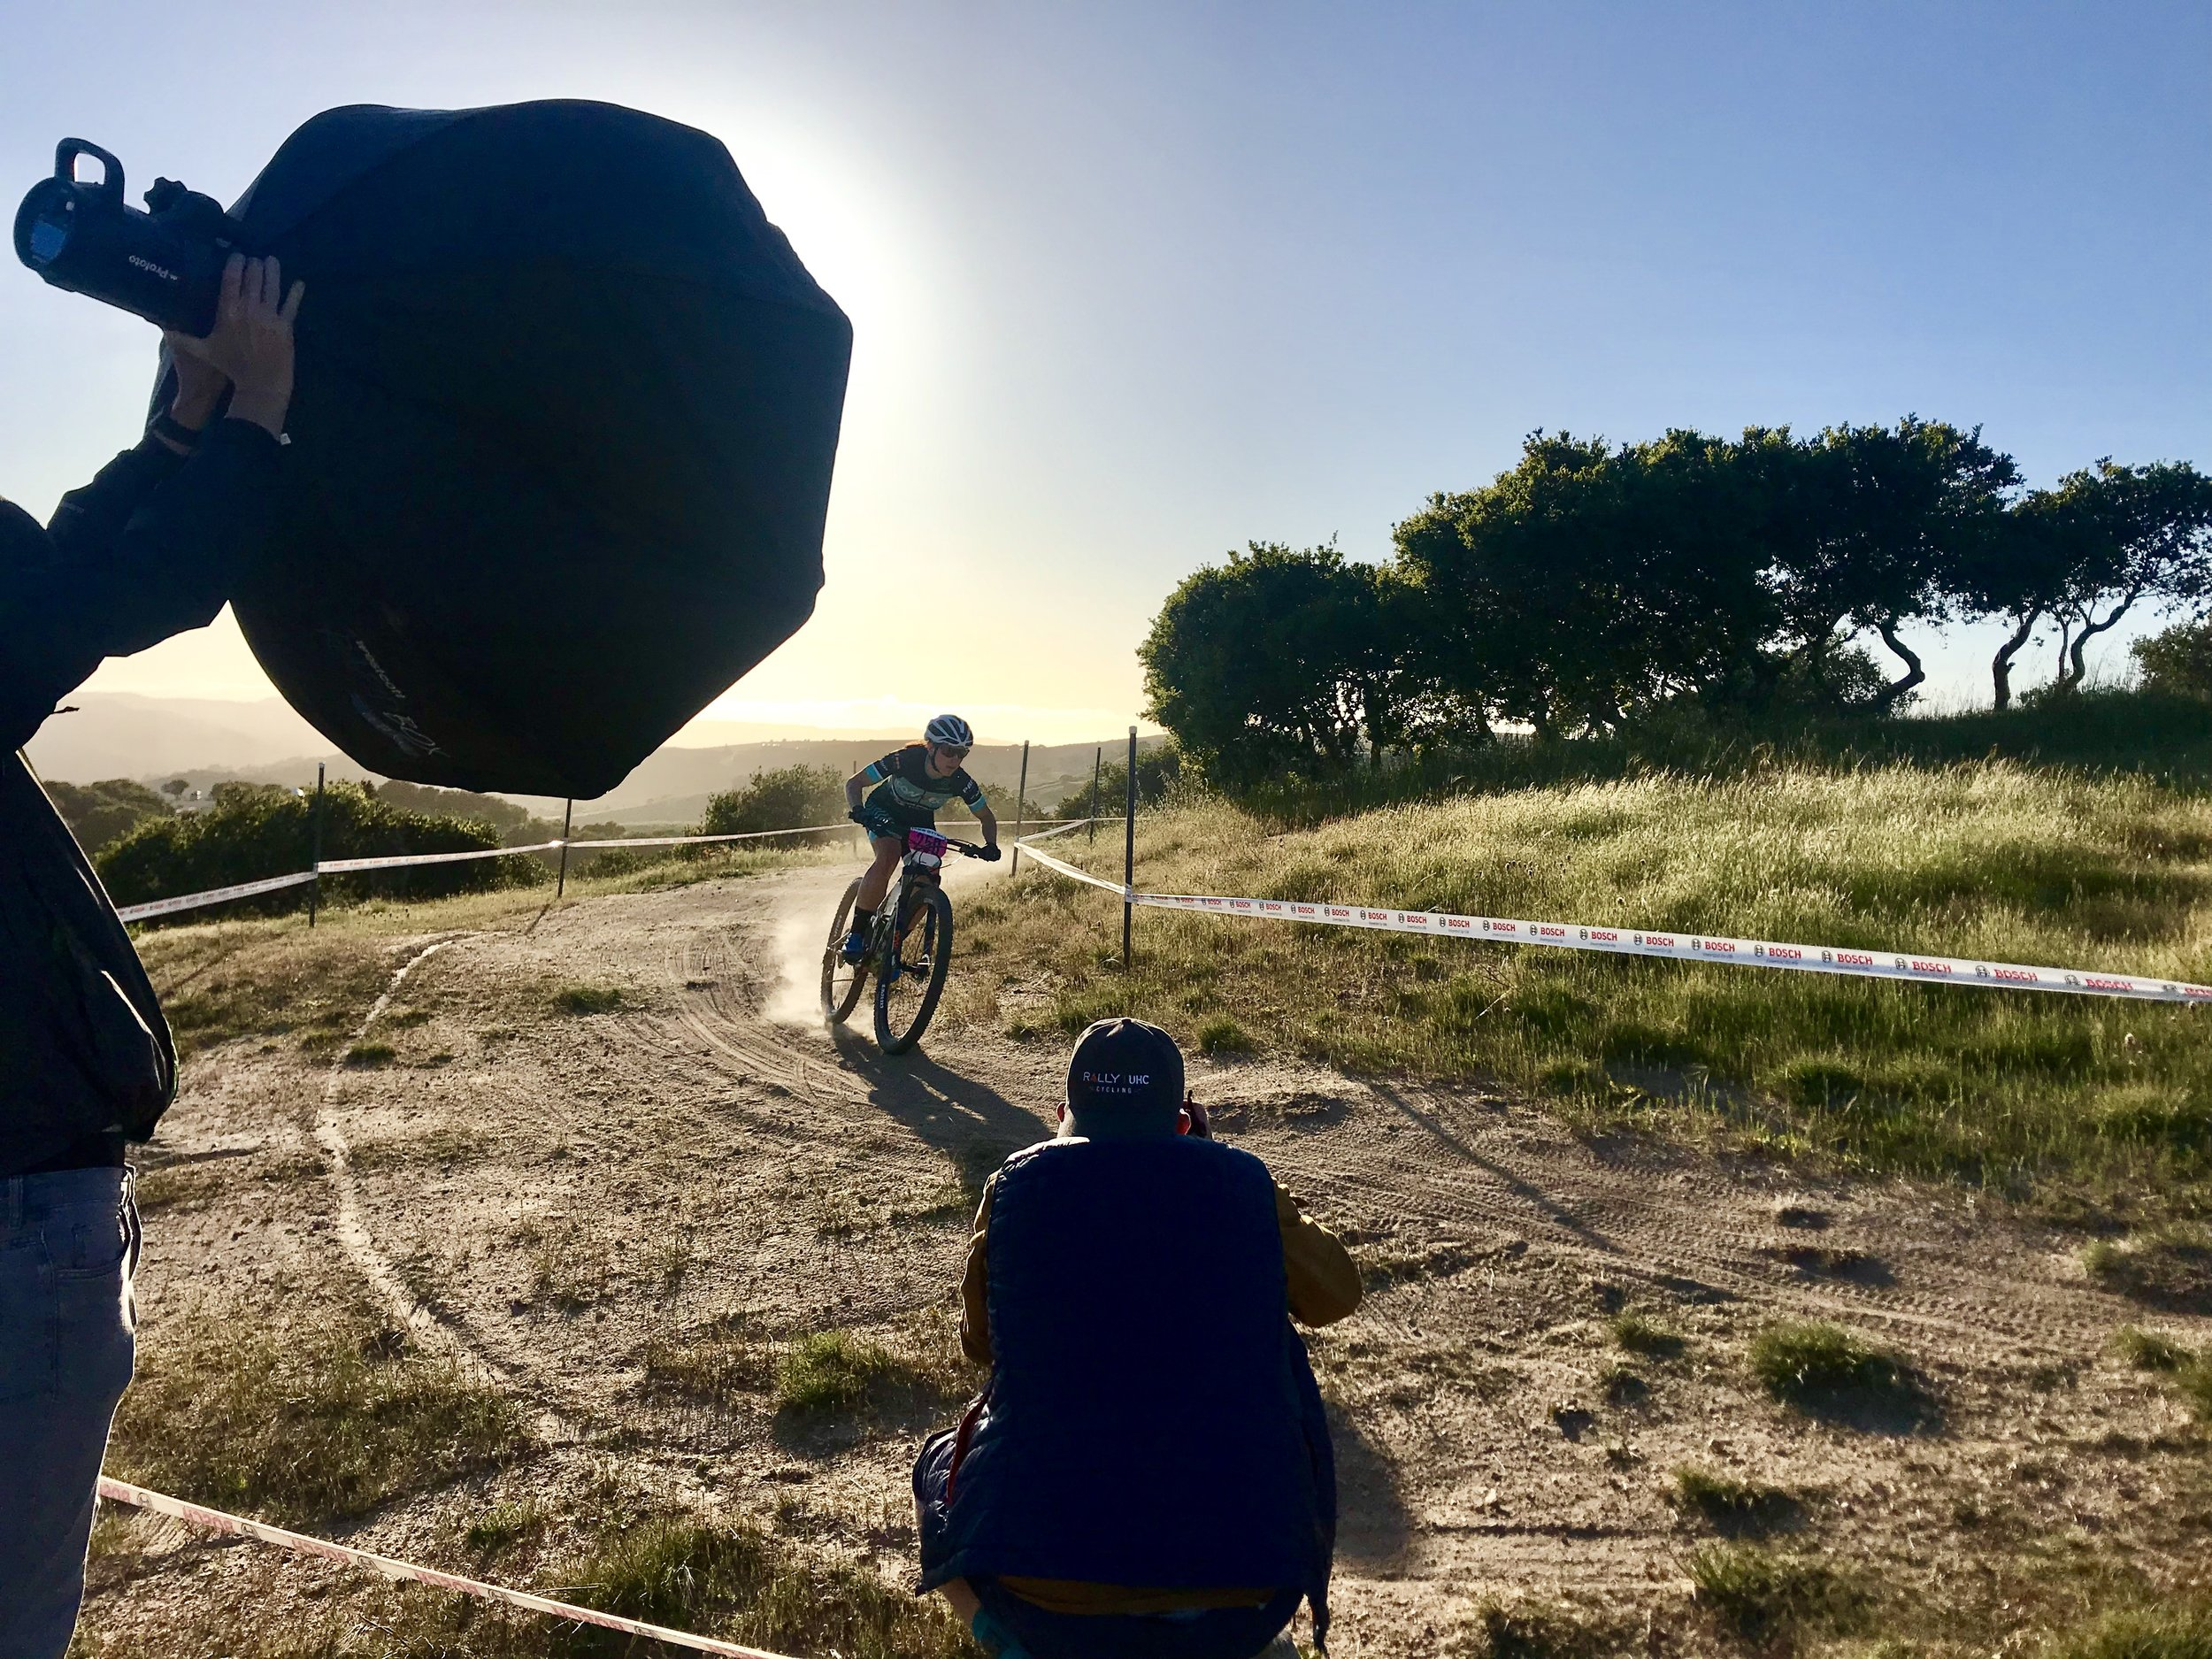 Pro rider  Kelly Catale  during our  Seven Cycles  photo shoot at the Sea Otter Classic with photographer  Wil Matthews  and  Jake Orness .